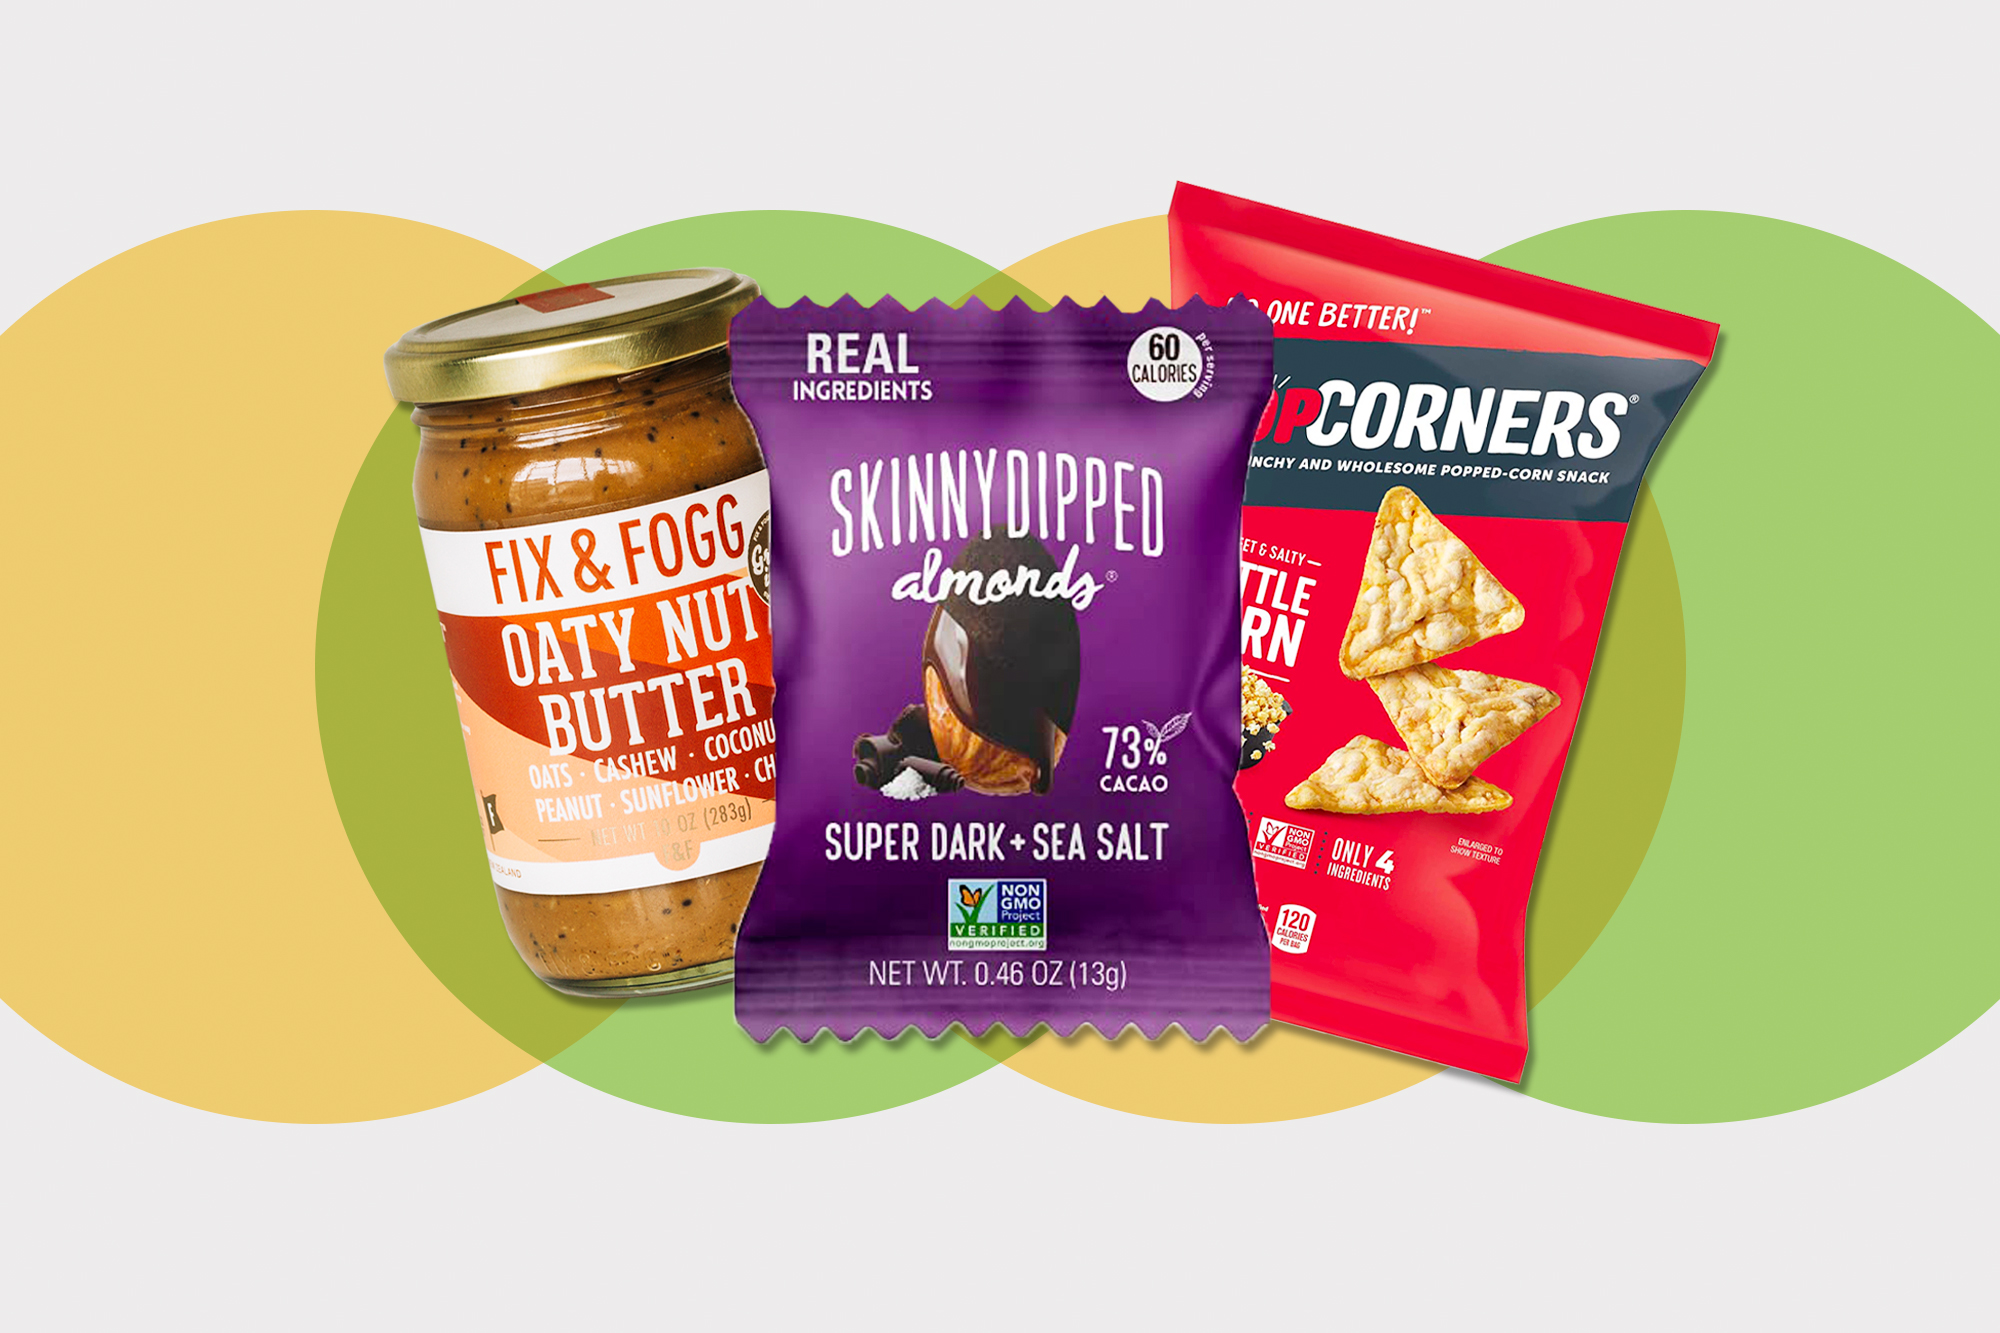 SkinnyDipped Snack Attack Minis Almond, Popcorners Snack Pack, Gluten Free, Vegan Snack Kettle Corn, and Seapoint Farms Sea Salt Dry Roasted Edamame on a designed background